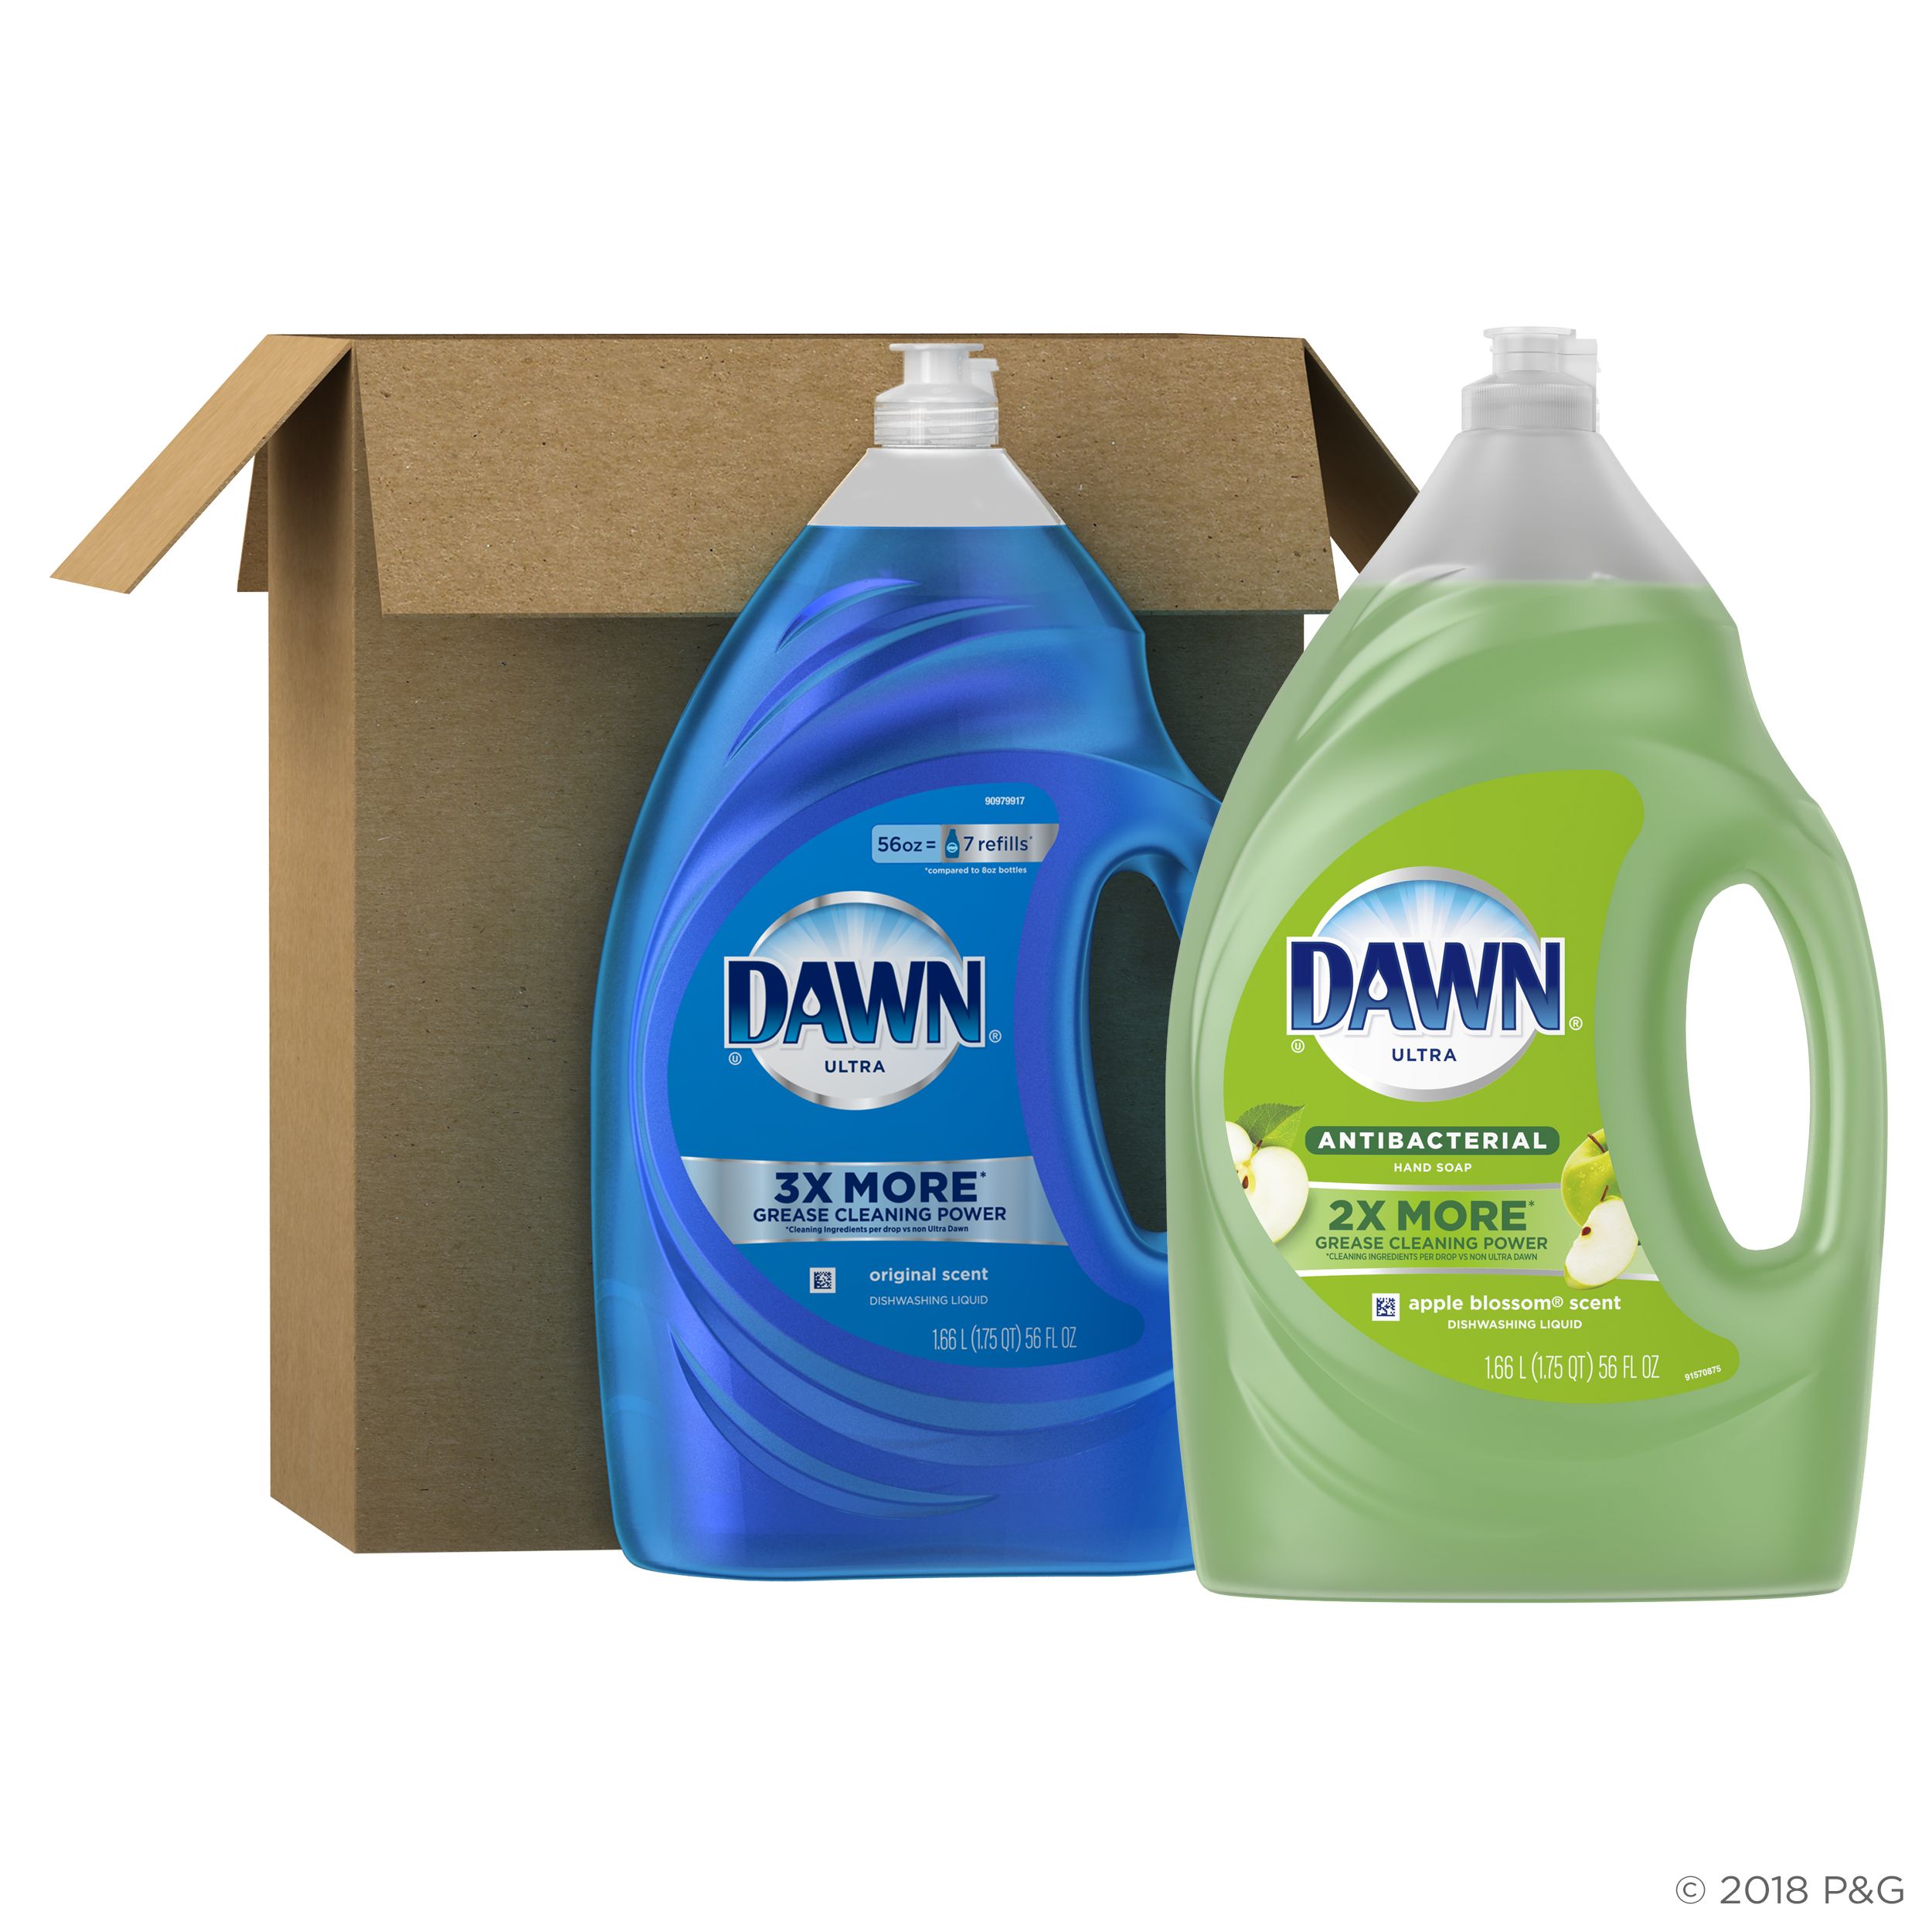 Dawn Ultra Antibacterial Dishwashing Liquid, Apple Blossom Scent, 56 fl oz + Dawn Ultra Dishwashing Liquid, Original Scent, 56 fl oz